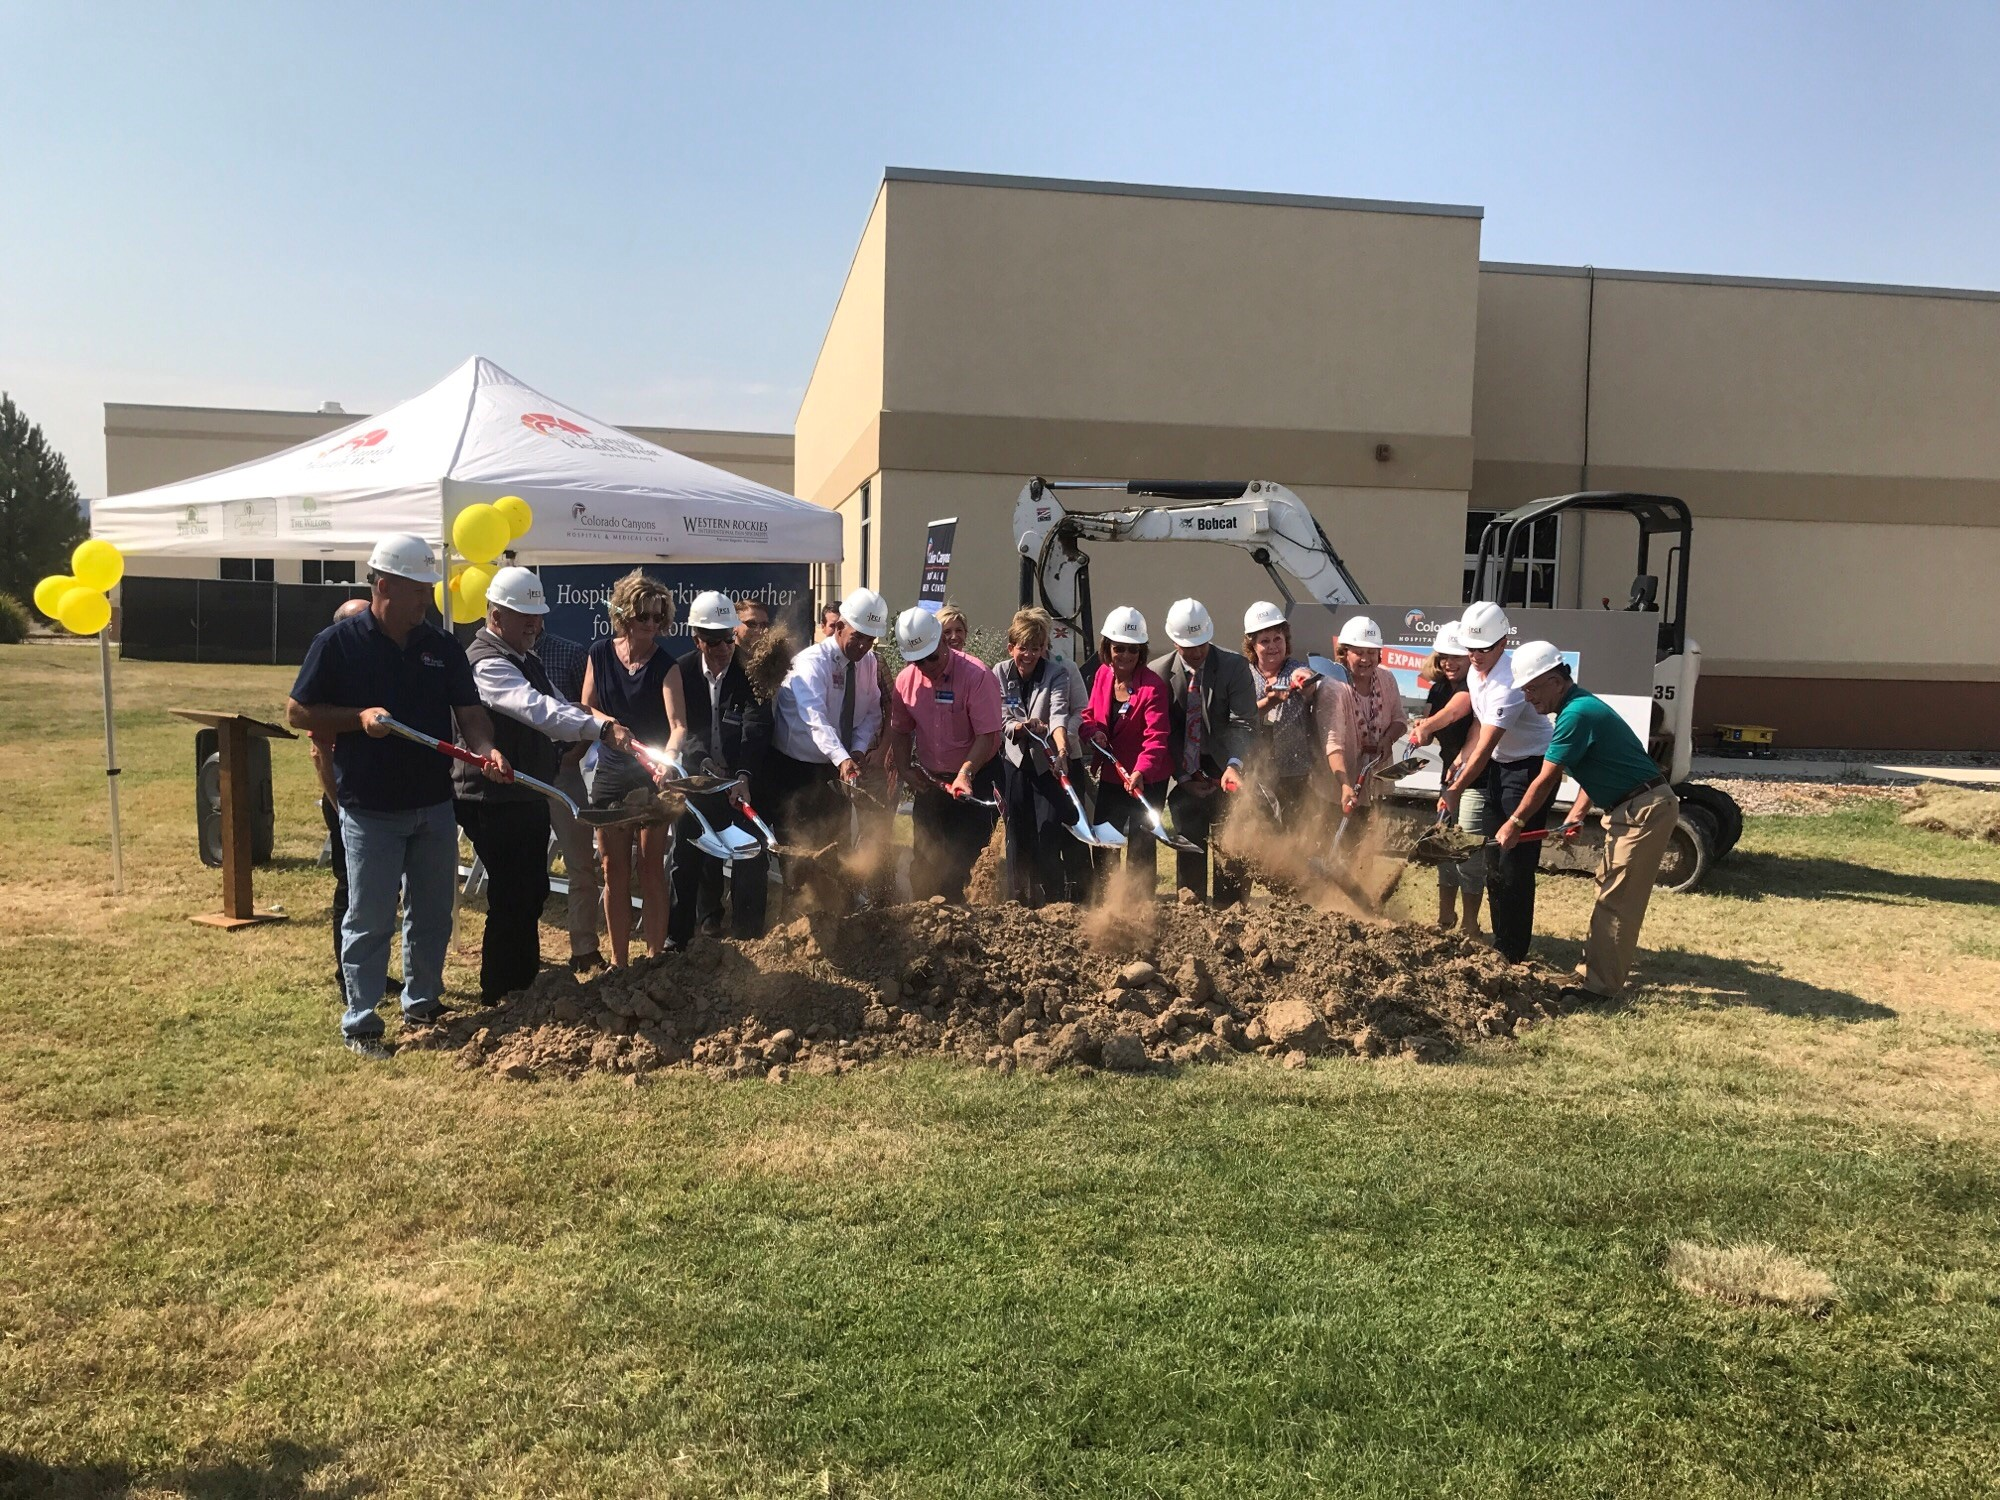 Family Health West and St. Mary's breaks ground on hospital expansion in Fruita, Colorado